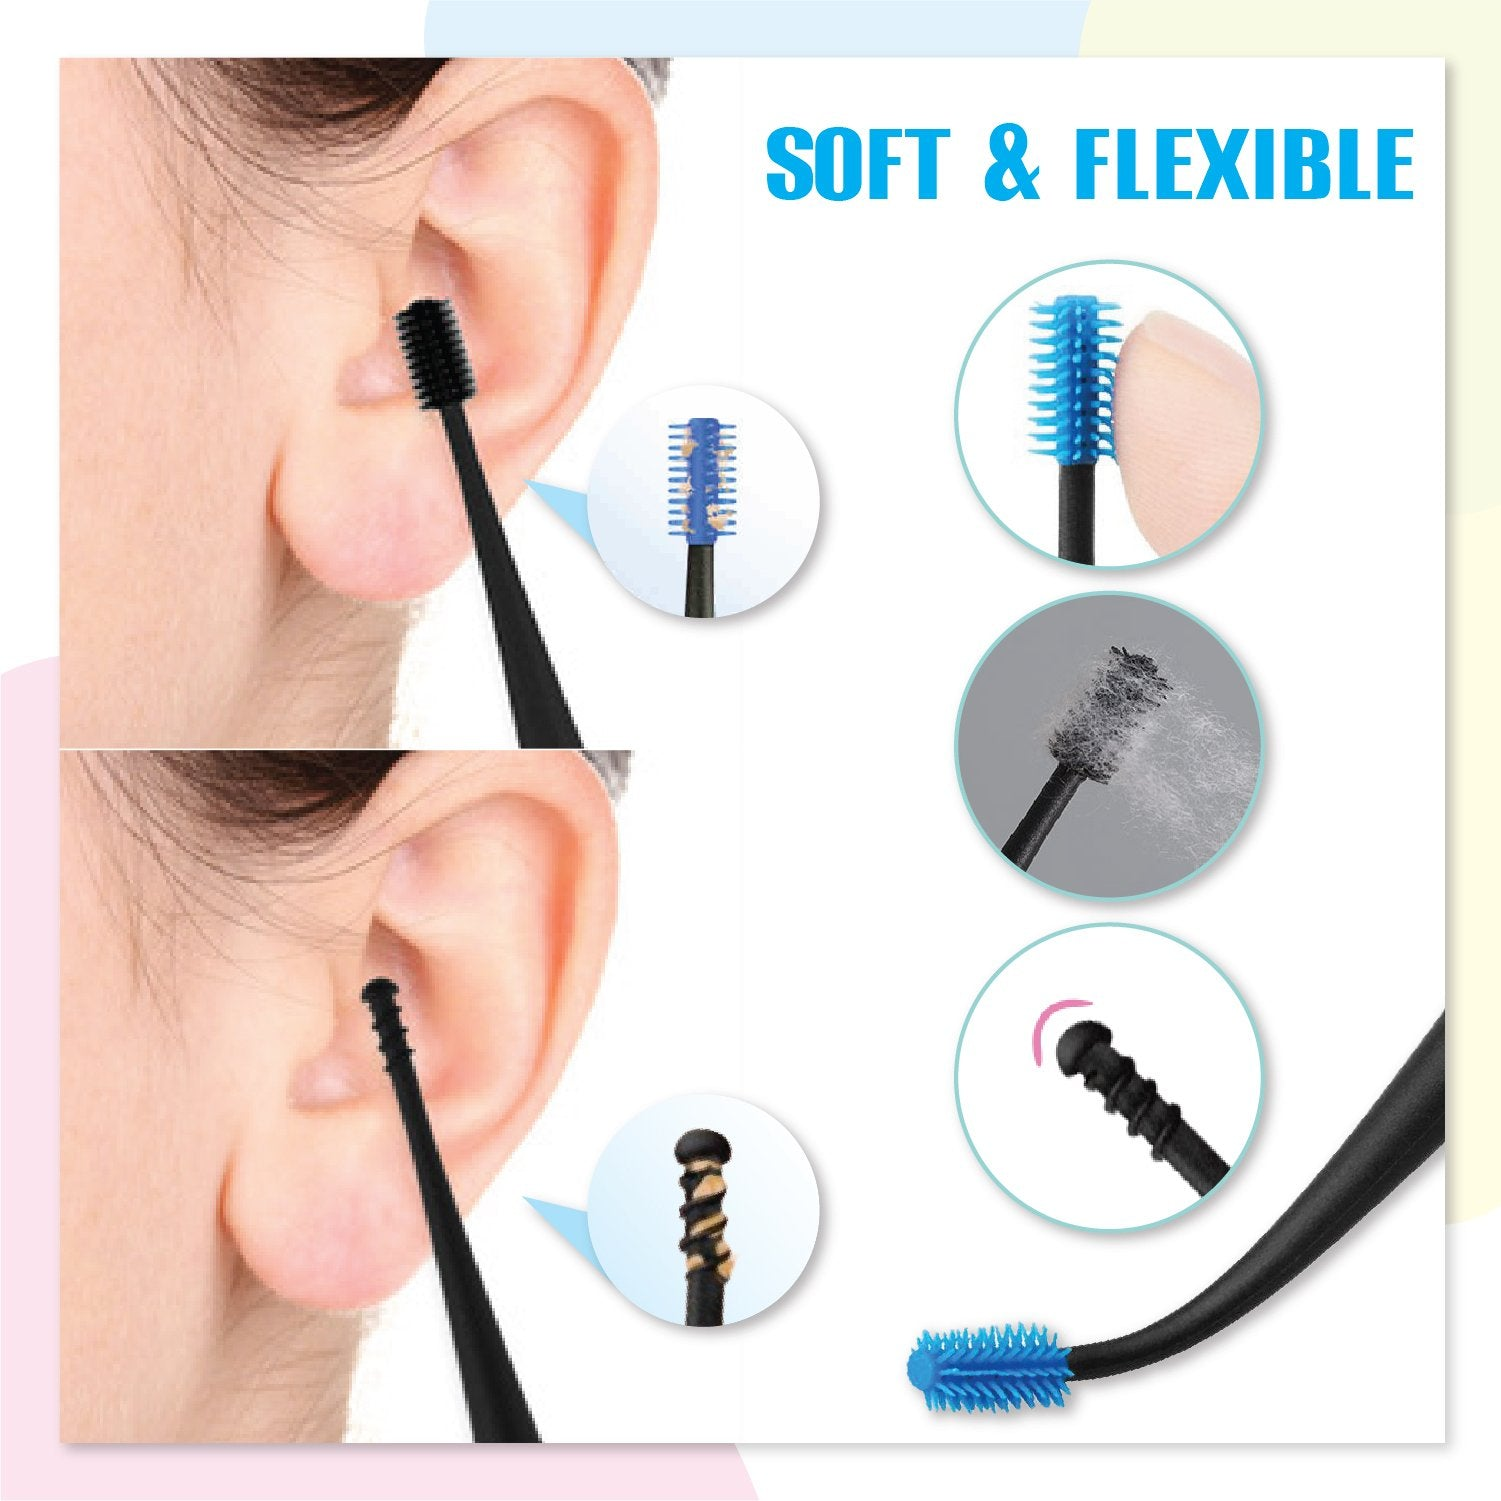 ComfyClean Dual-End Ear Pick